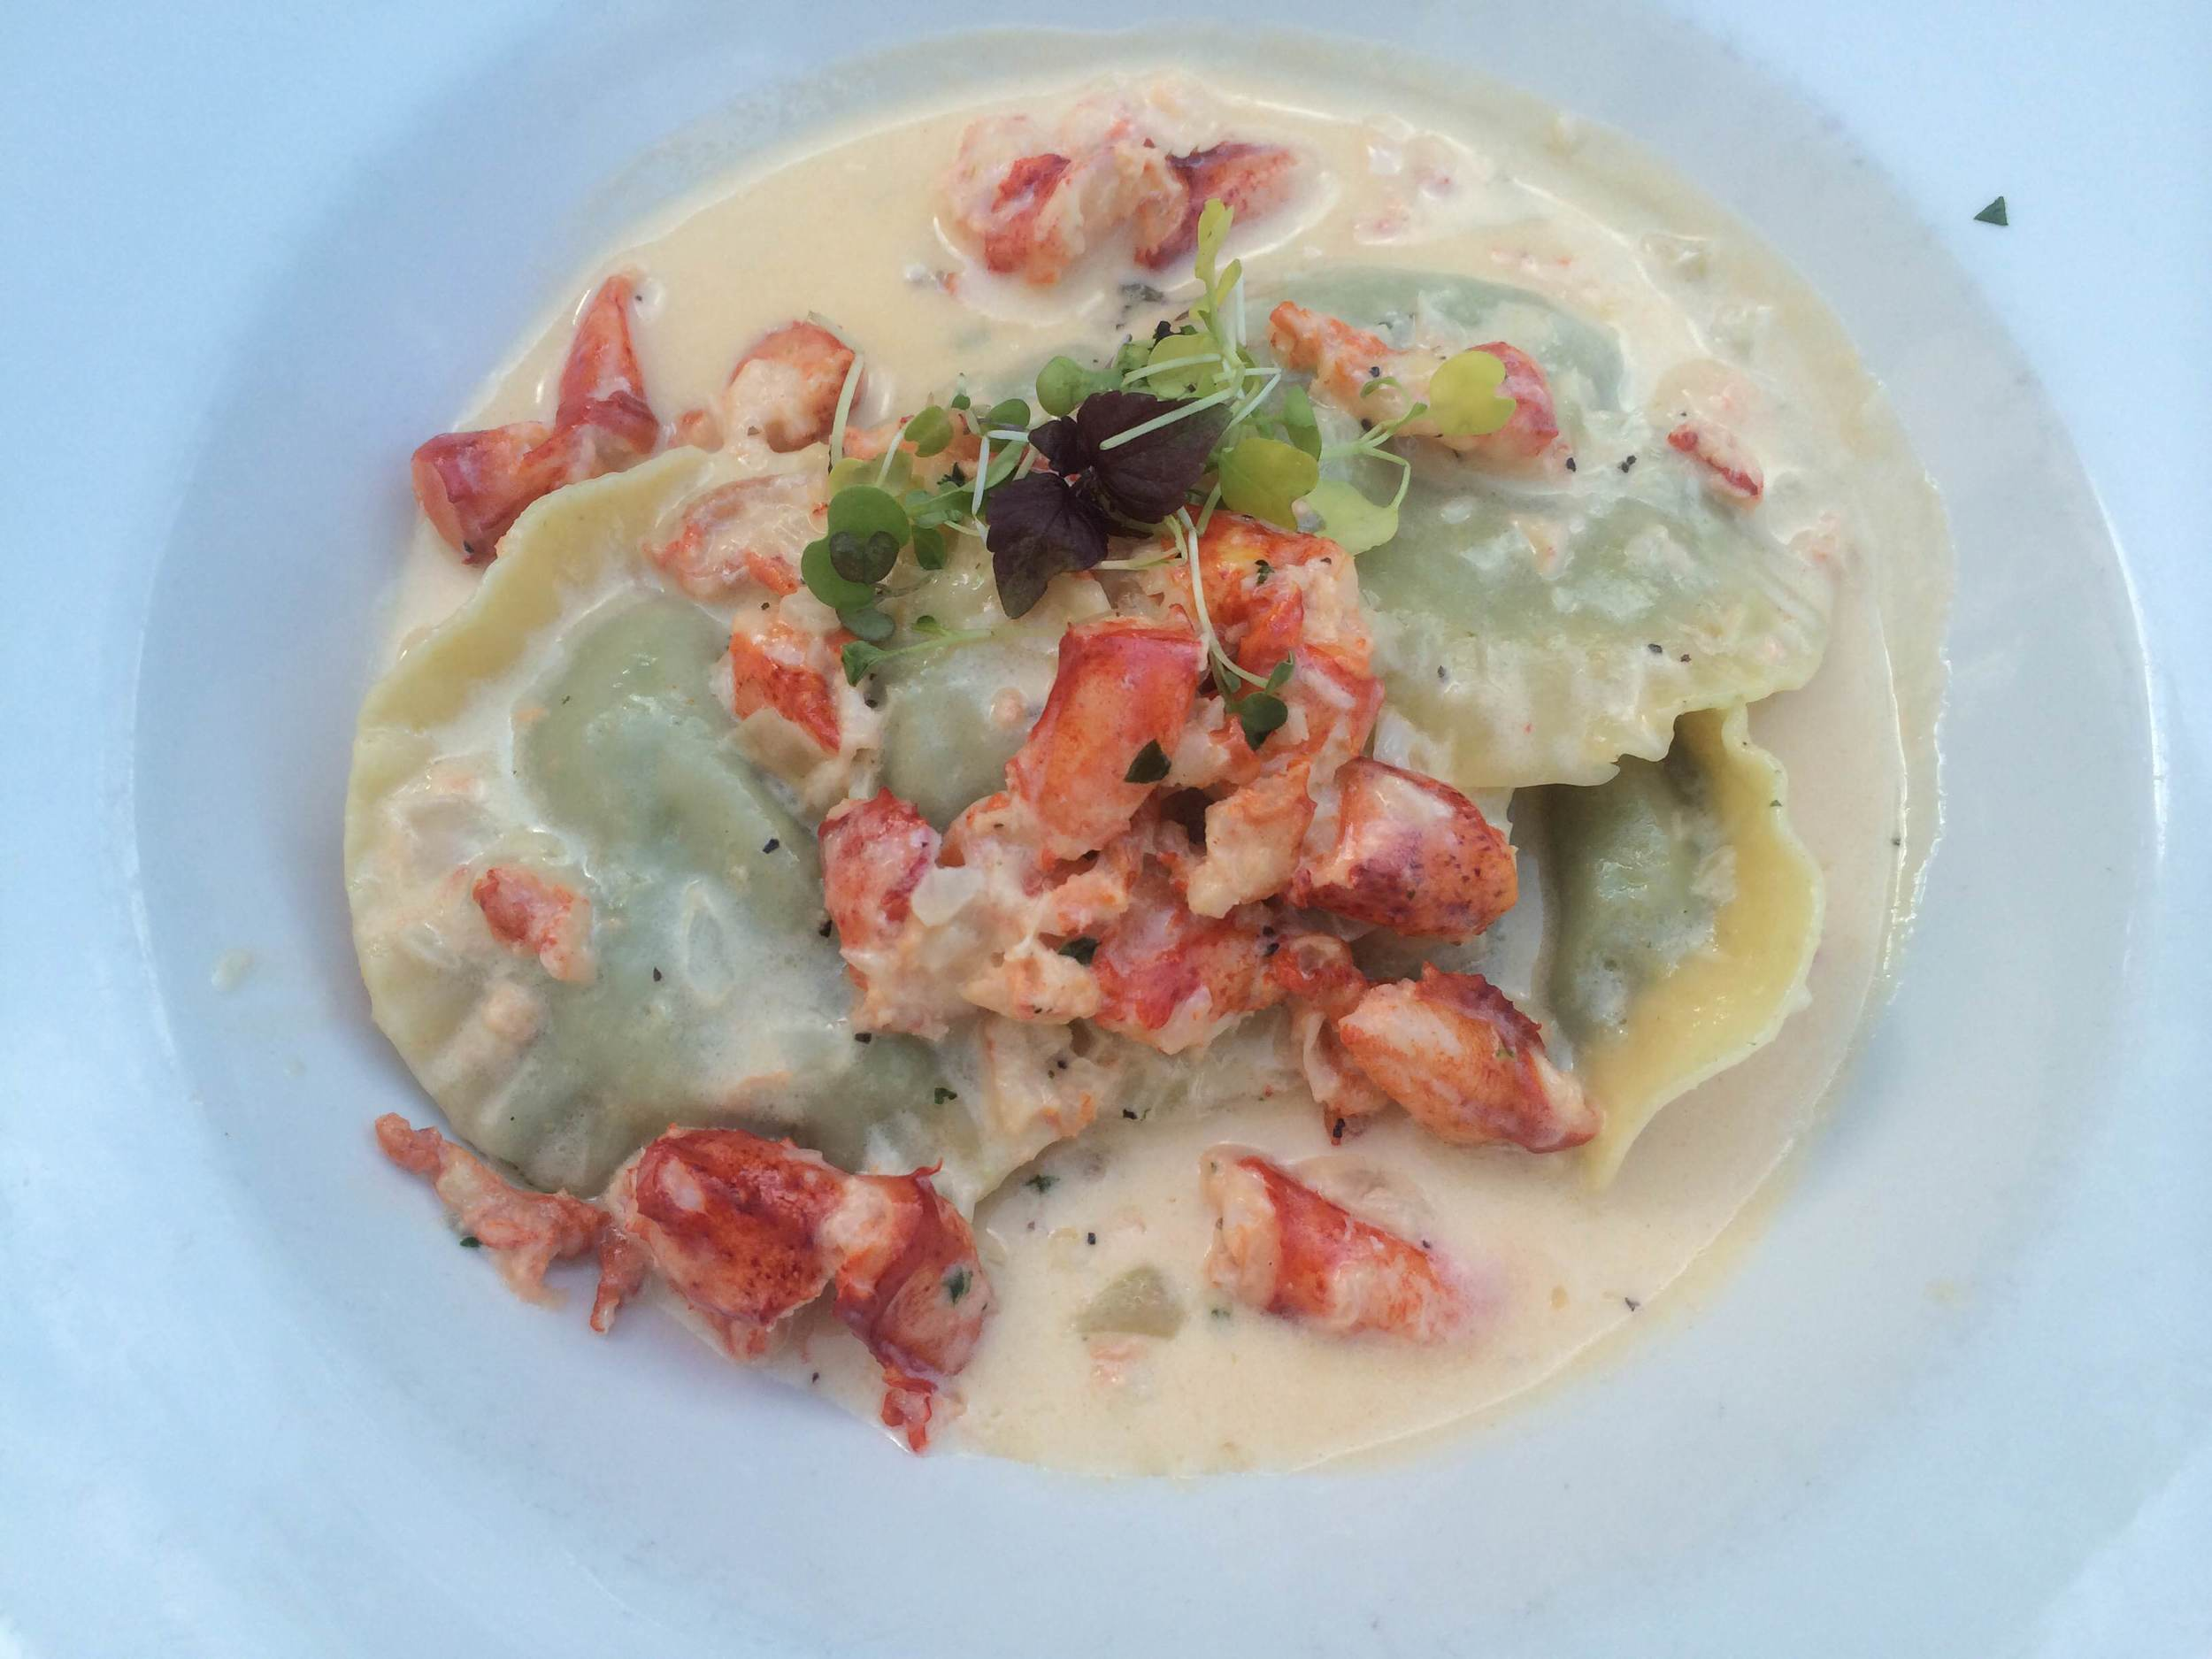 Lobster over spinach ravioli ($25) at Bistro 44 (44 Main St., Northport, 631-262-9744, Bistro44.net).  Long Islander News photo/ Arielle Dollinger